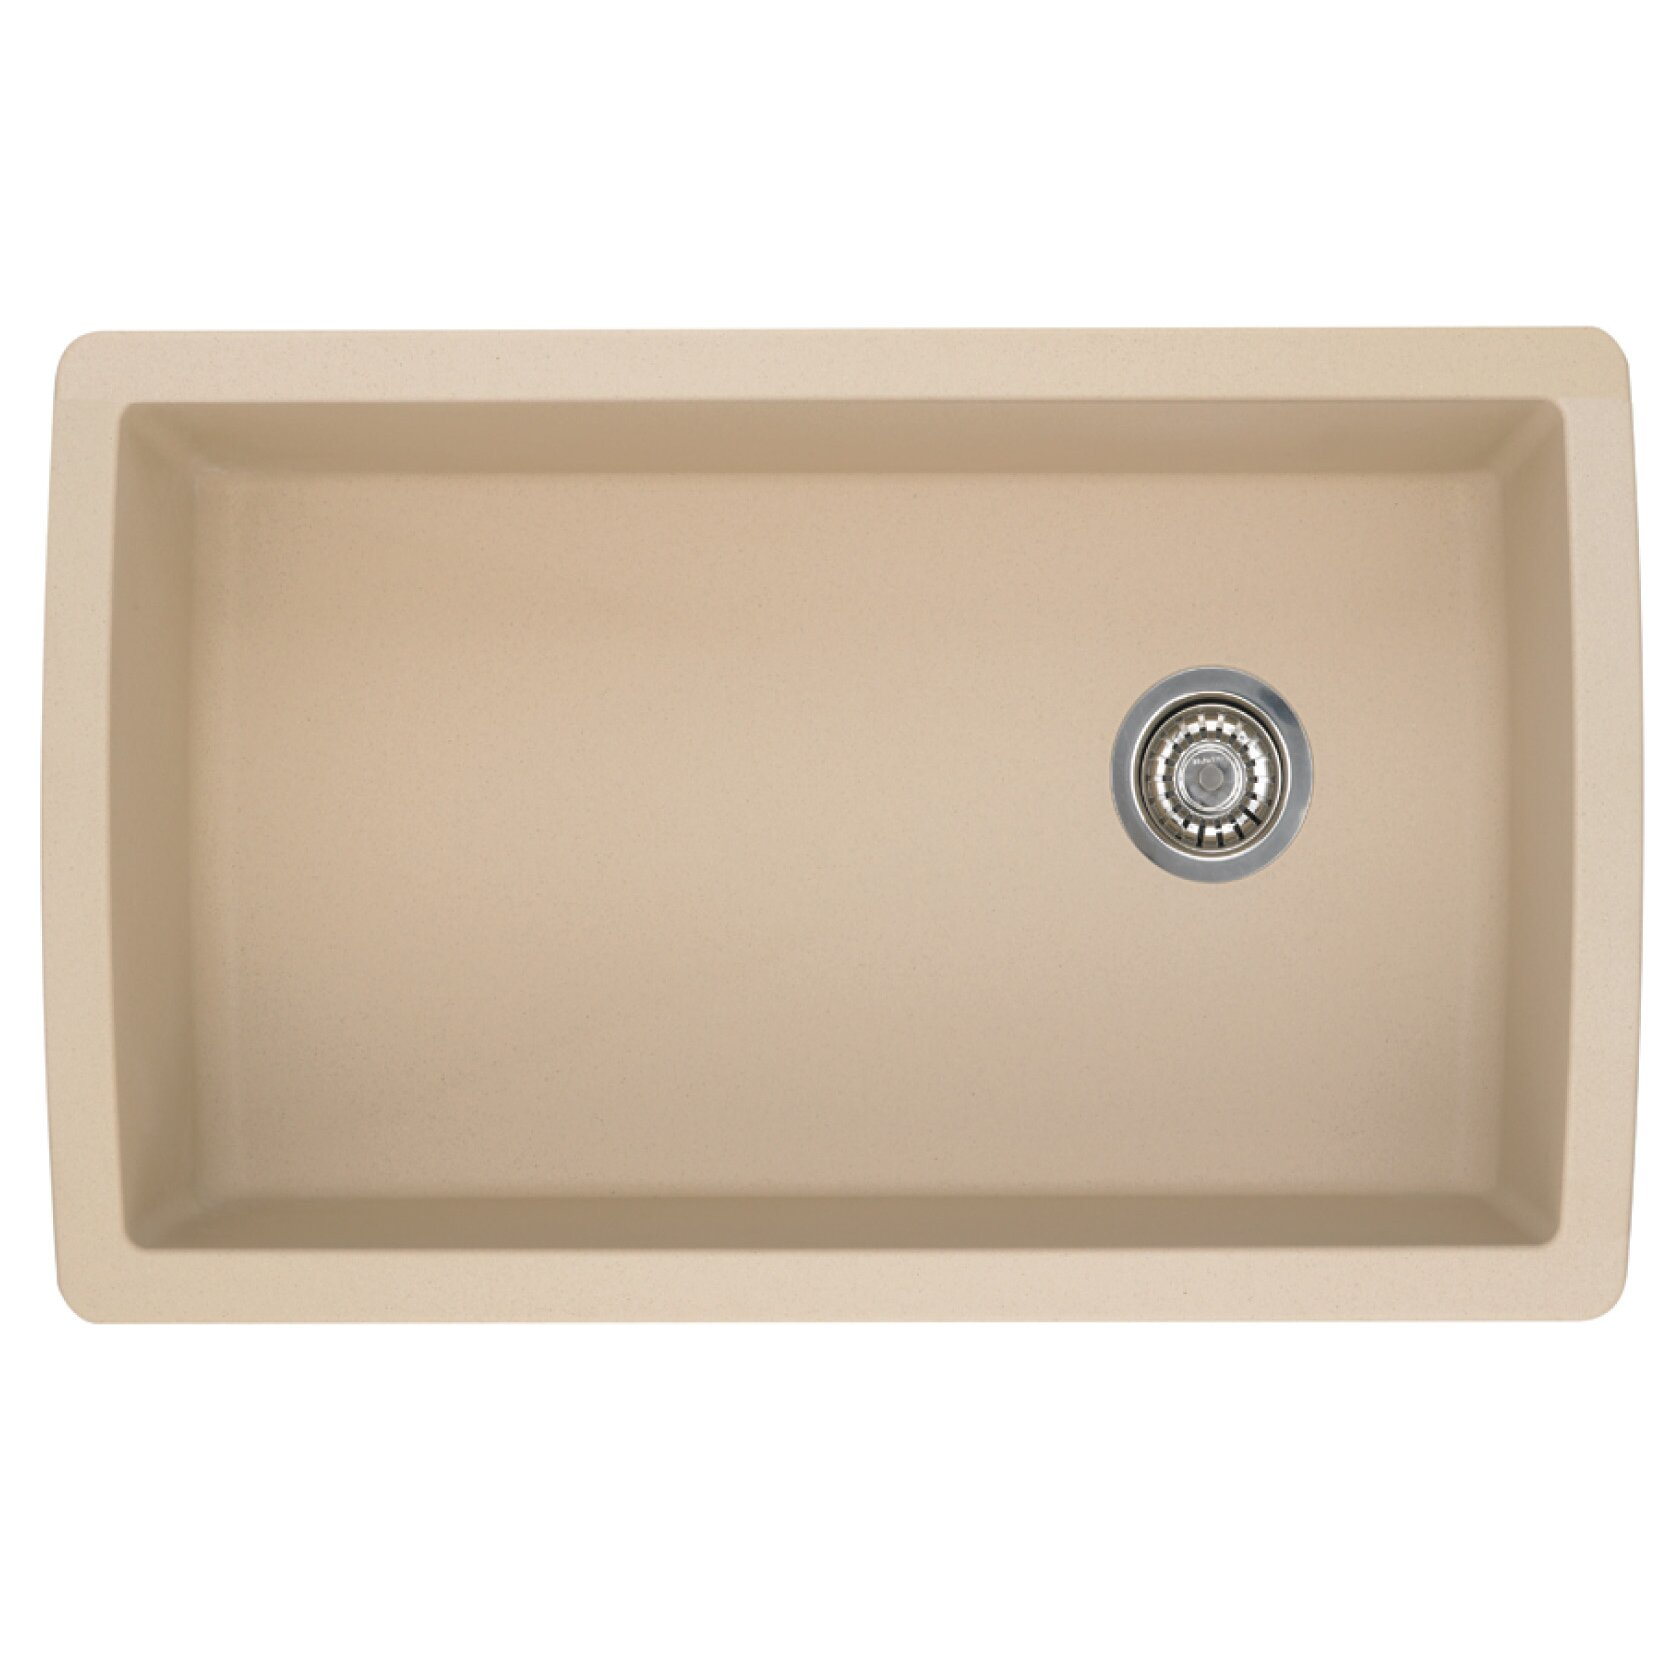 Blanco Top Mount Kitchen Sinks : Blanco Diamond 33.5